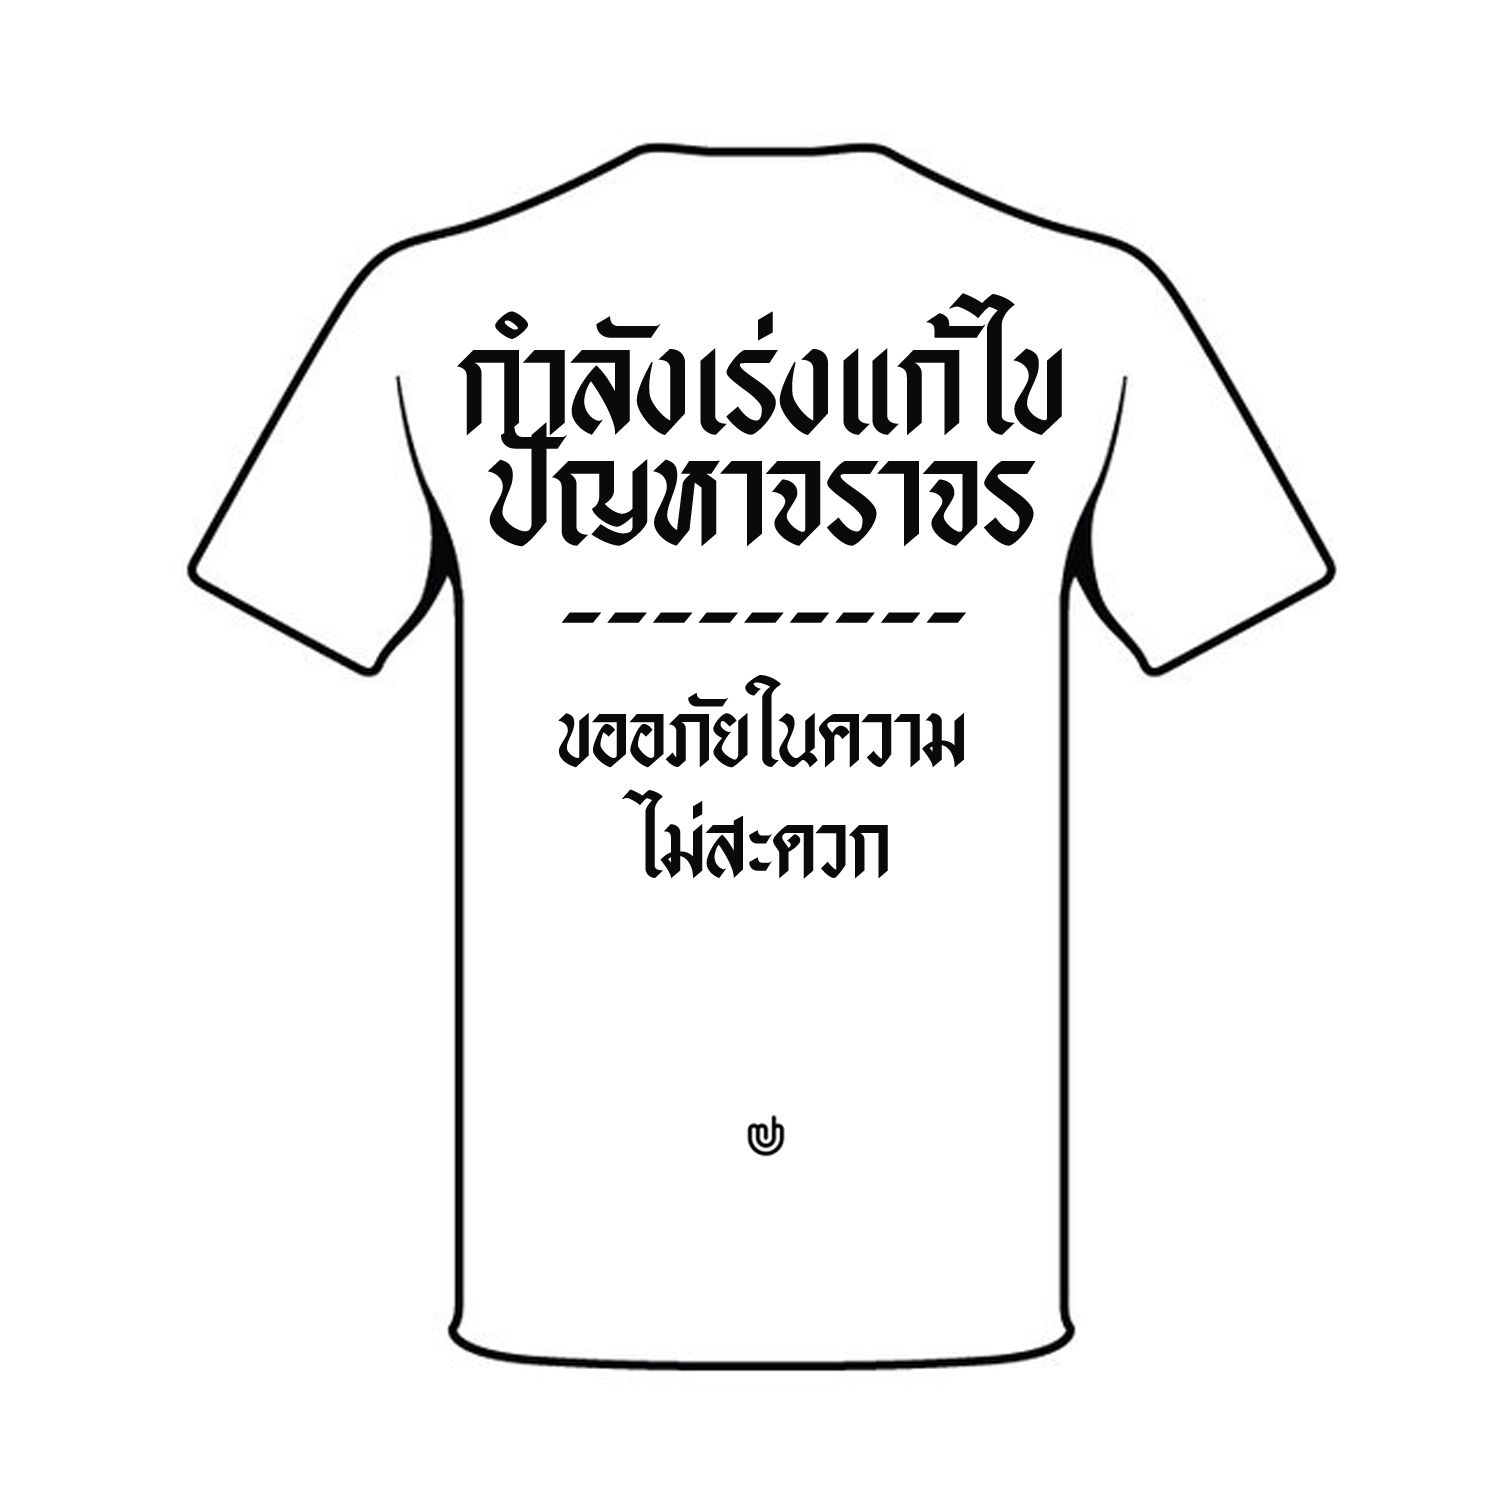 Printed T shirt for cycling campaign in Thailand.